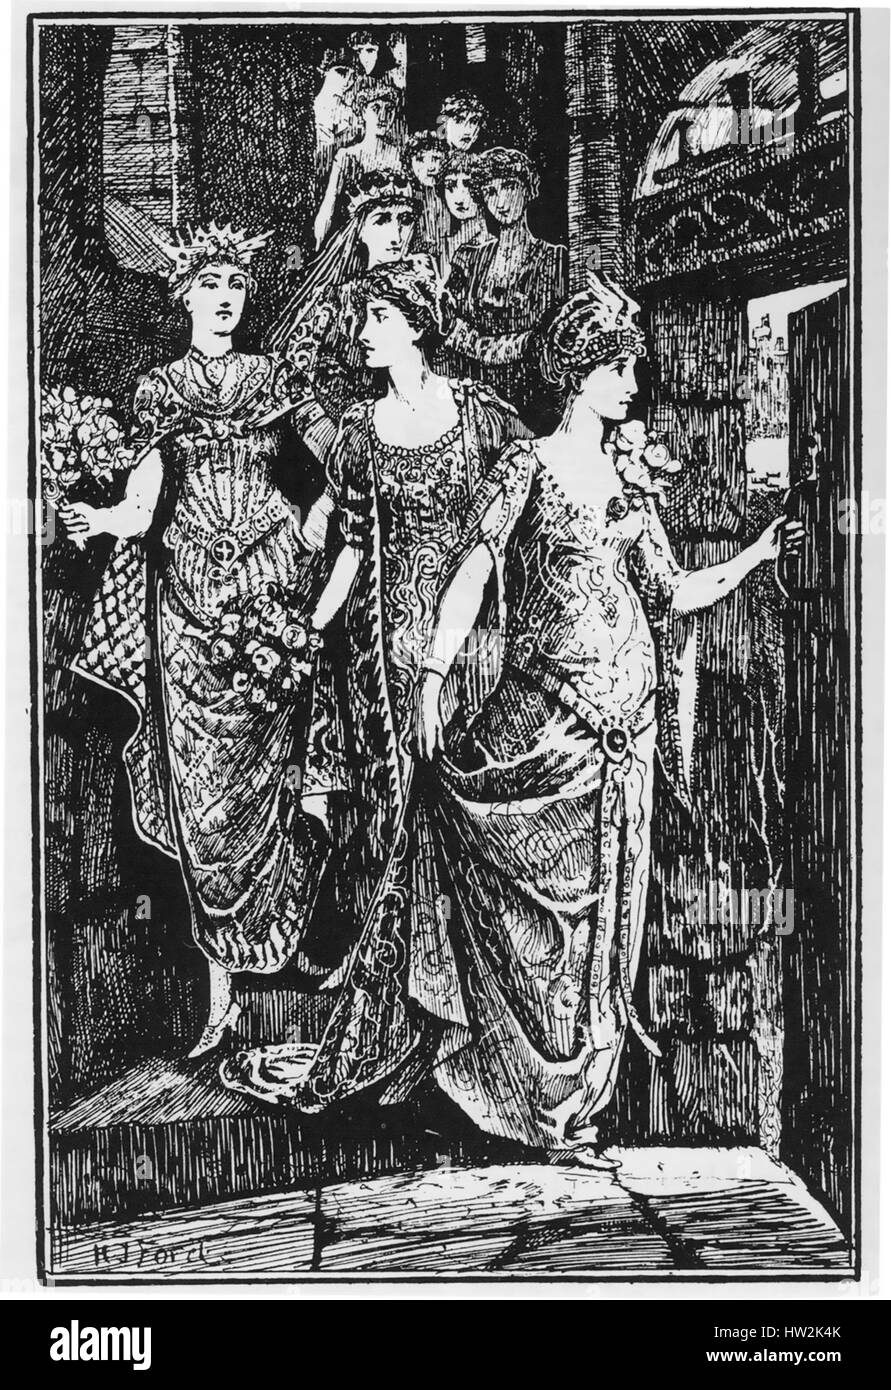 THE TWELVE DANCING PRINCESSES. Fairy tale collected by the Brothers Grimm.  Illustration by H.J.Ford from an 1890 - Stock Image